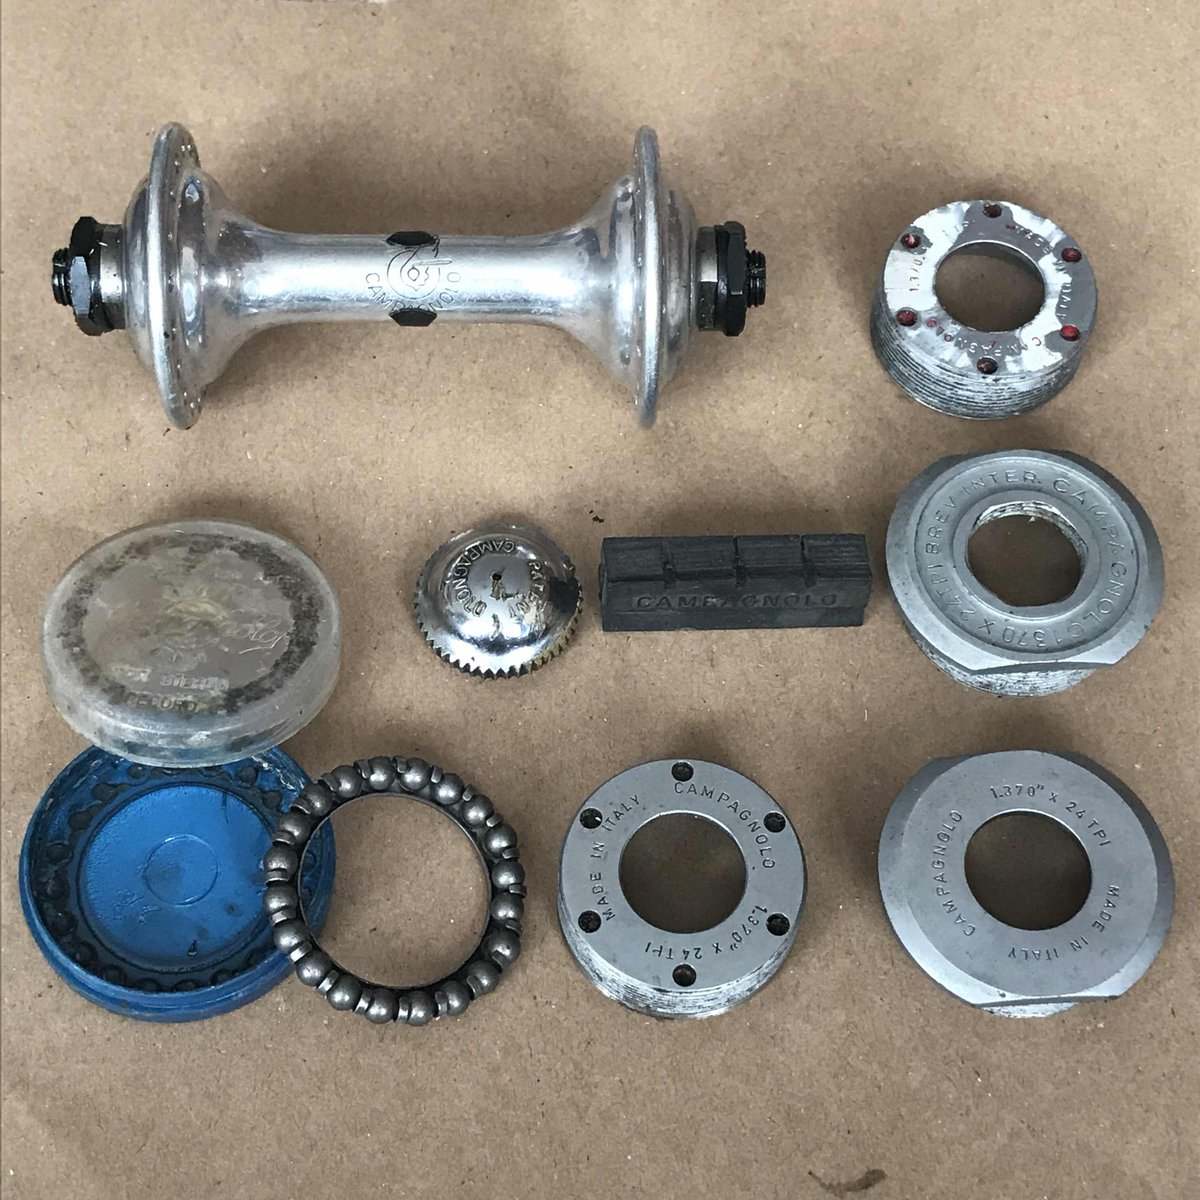 Bst Uk On Twitter Small Job Lot Campagnolo Bike Parts Campag